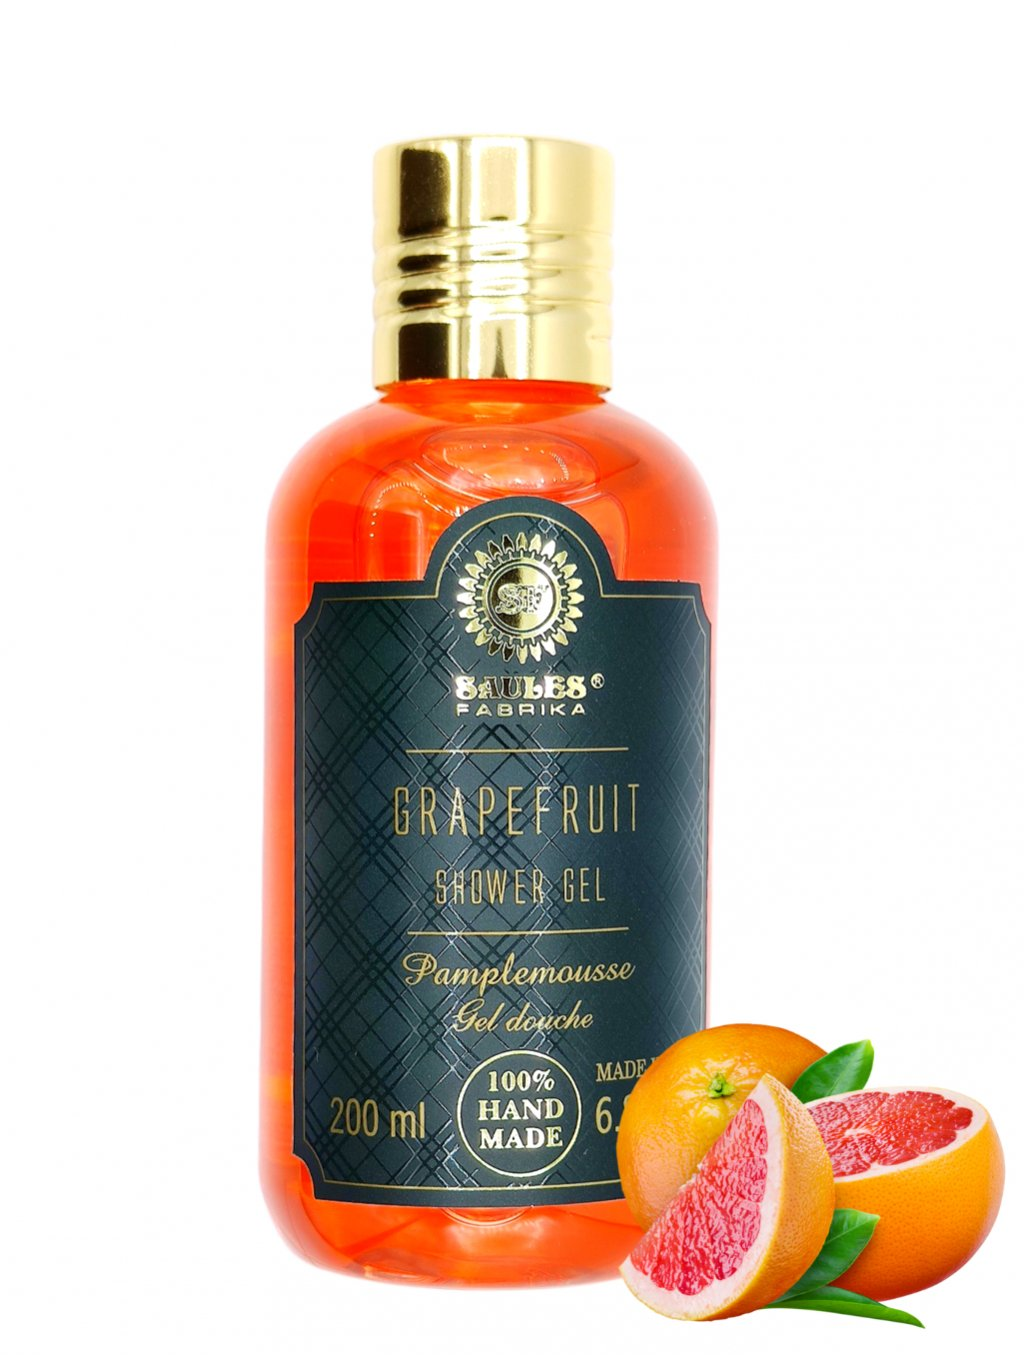 Sprchový gel - Grapefruit 200 ml